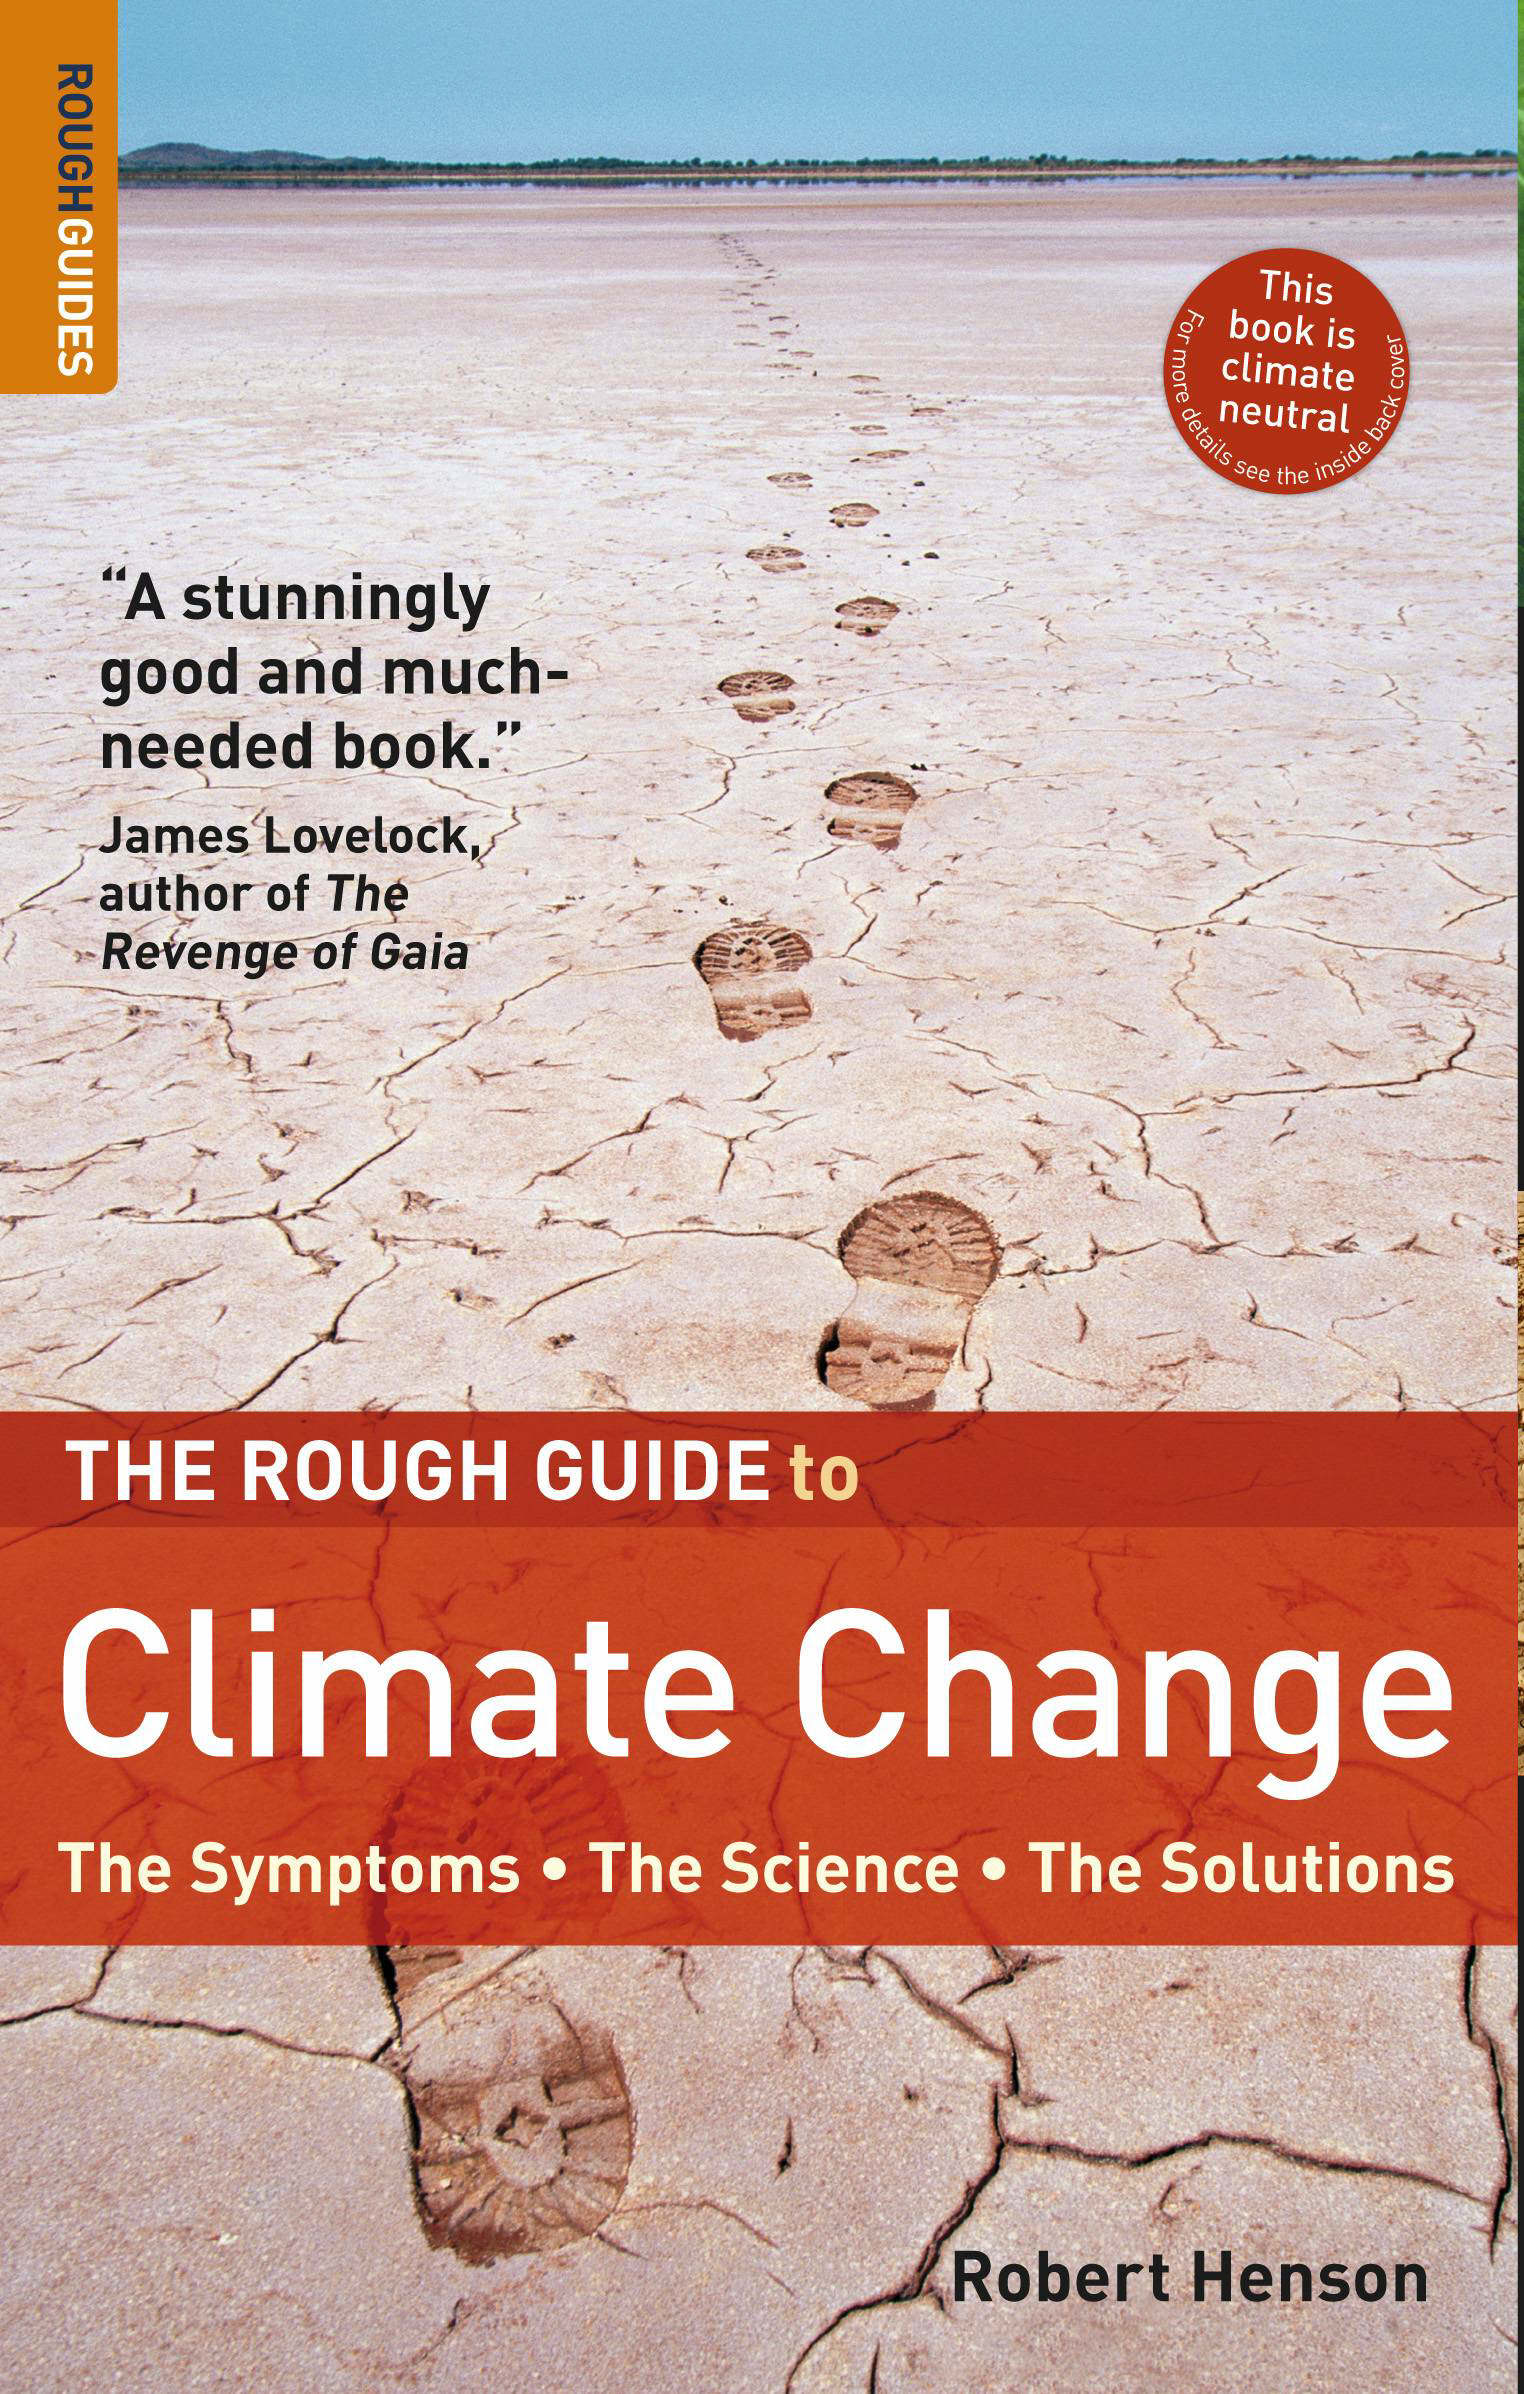 rough guide to climate change robert henson